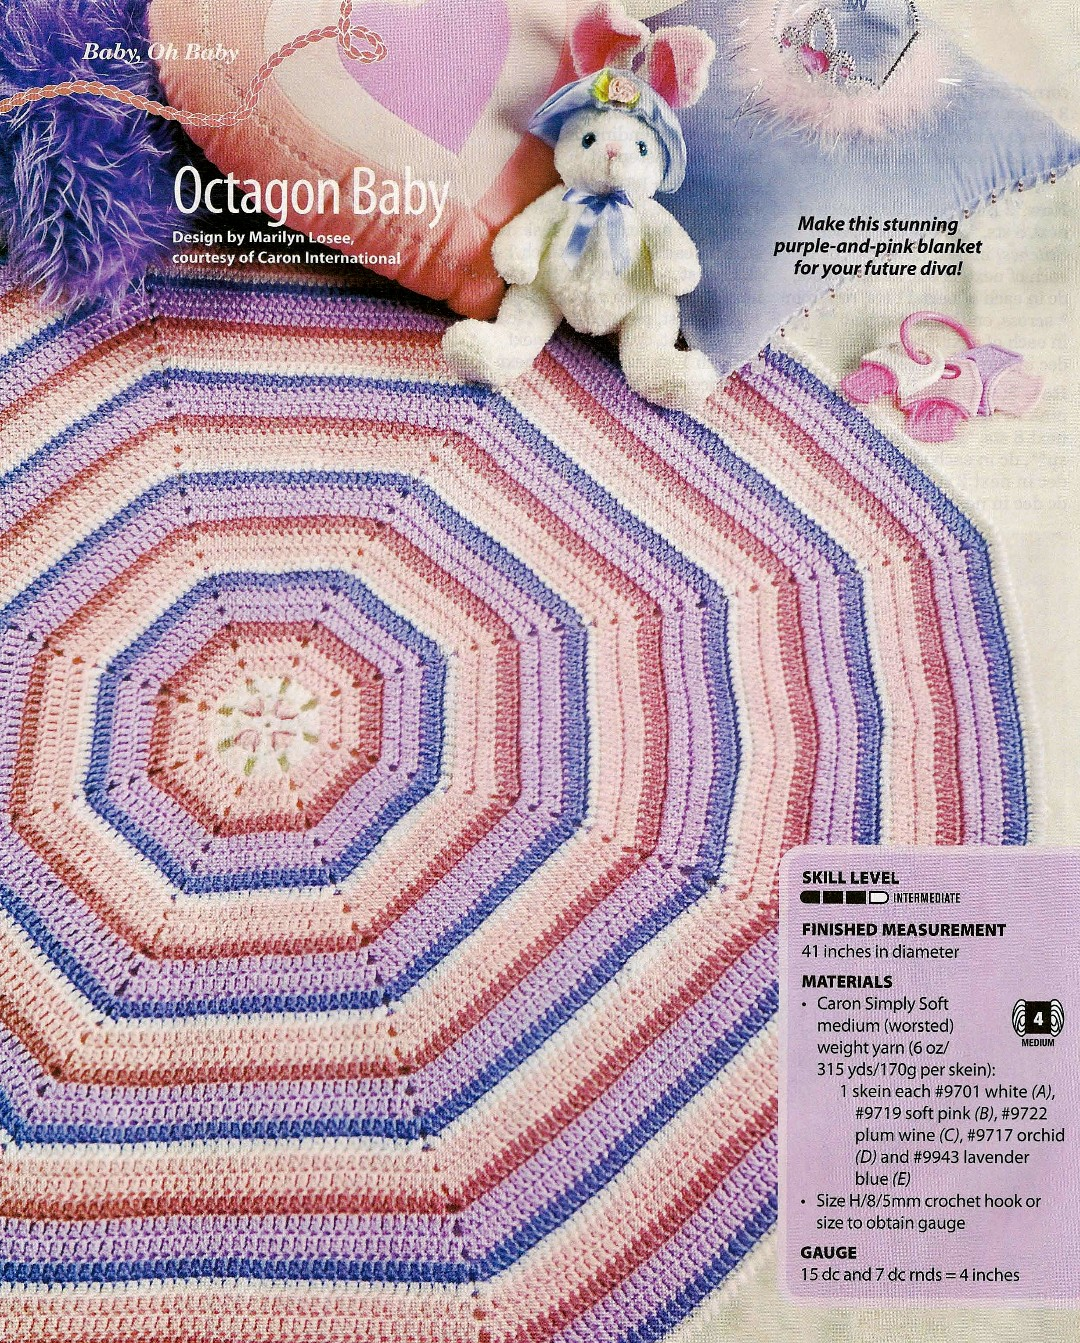 Octagon Baby Afghan Crochet Pattern : Aran Afghan Free Pattern Patterns Gallery